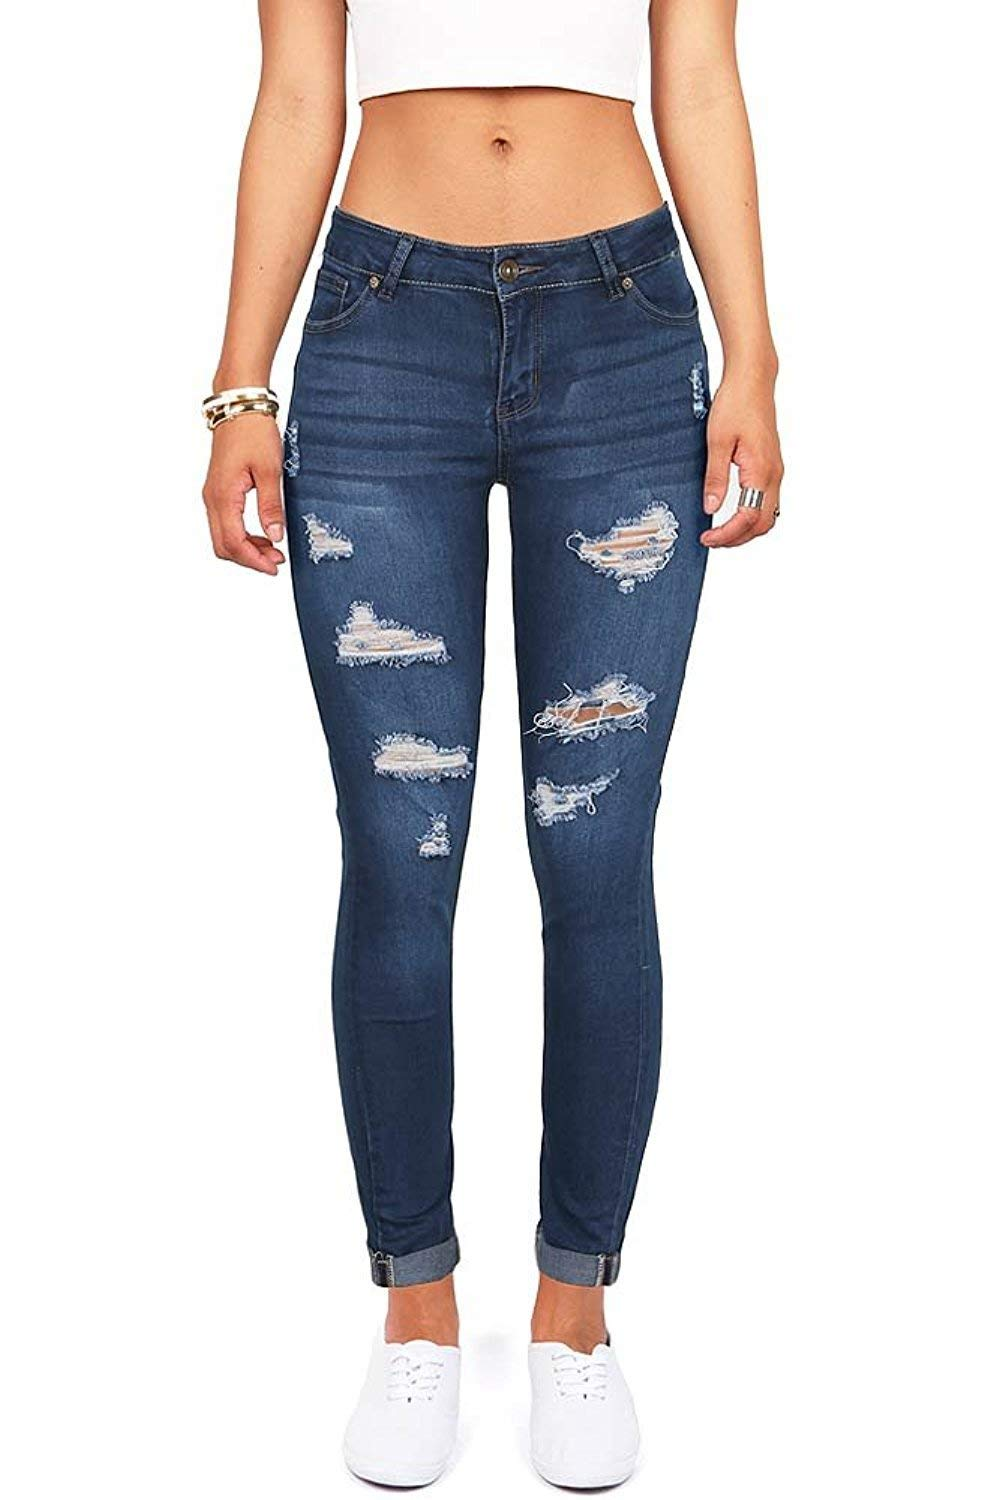 Women's High Waisted Butt Lift Stretch Ripped Skinny Jeans Distressed Denim Pants US 4 Blue 35 by Skirt BL